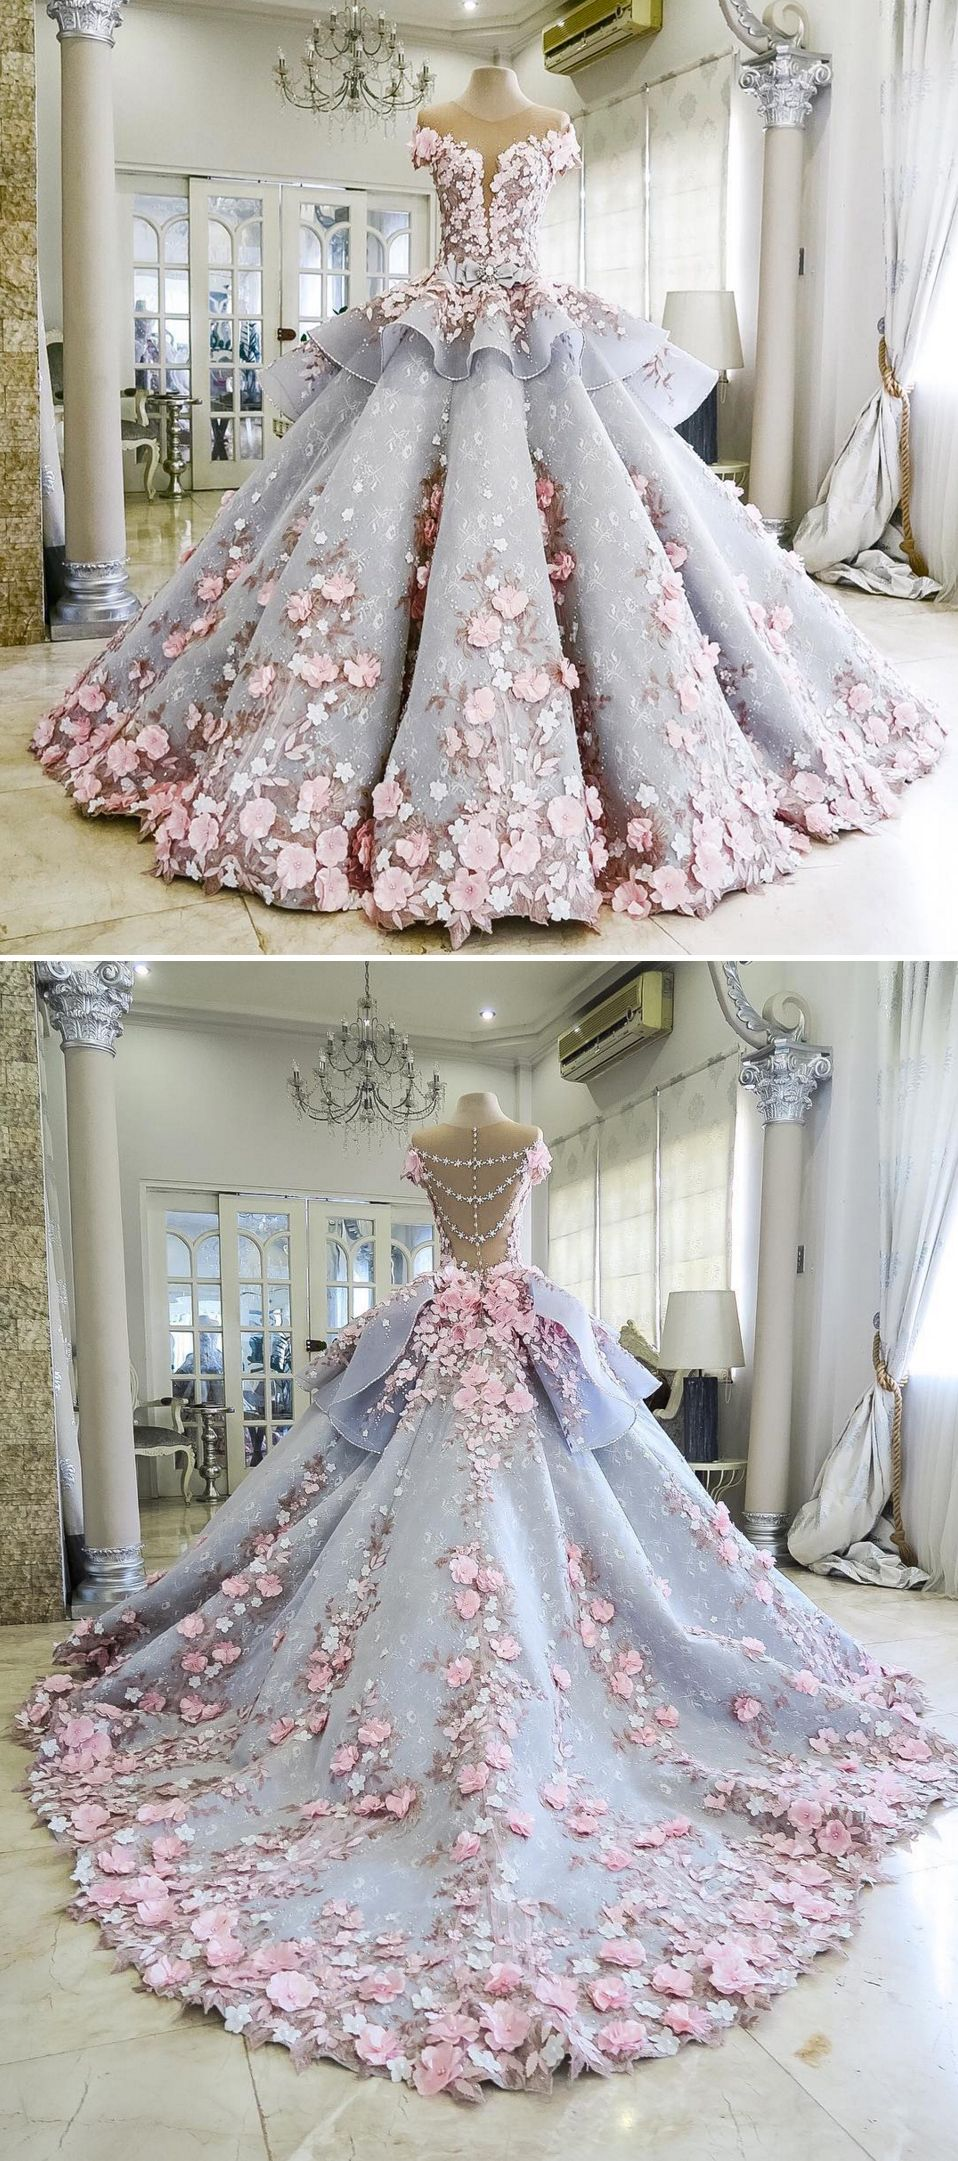 Ball gown fit for a princess pantone color of the year rose